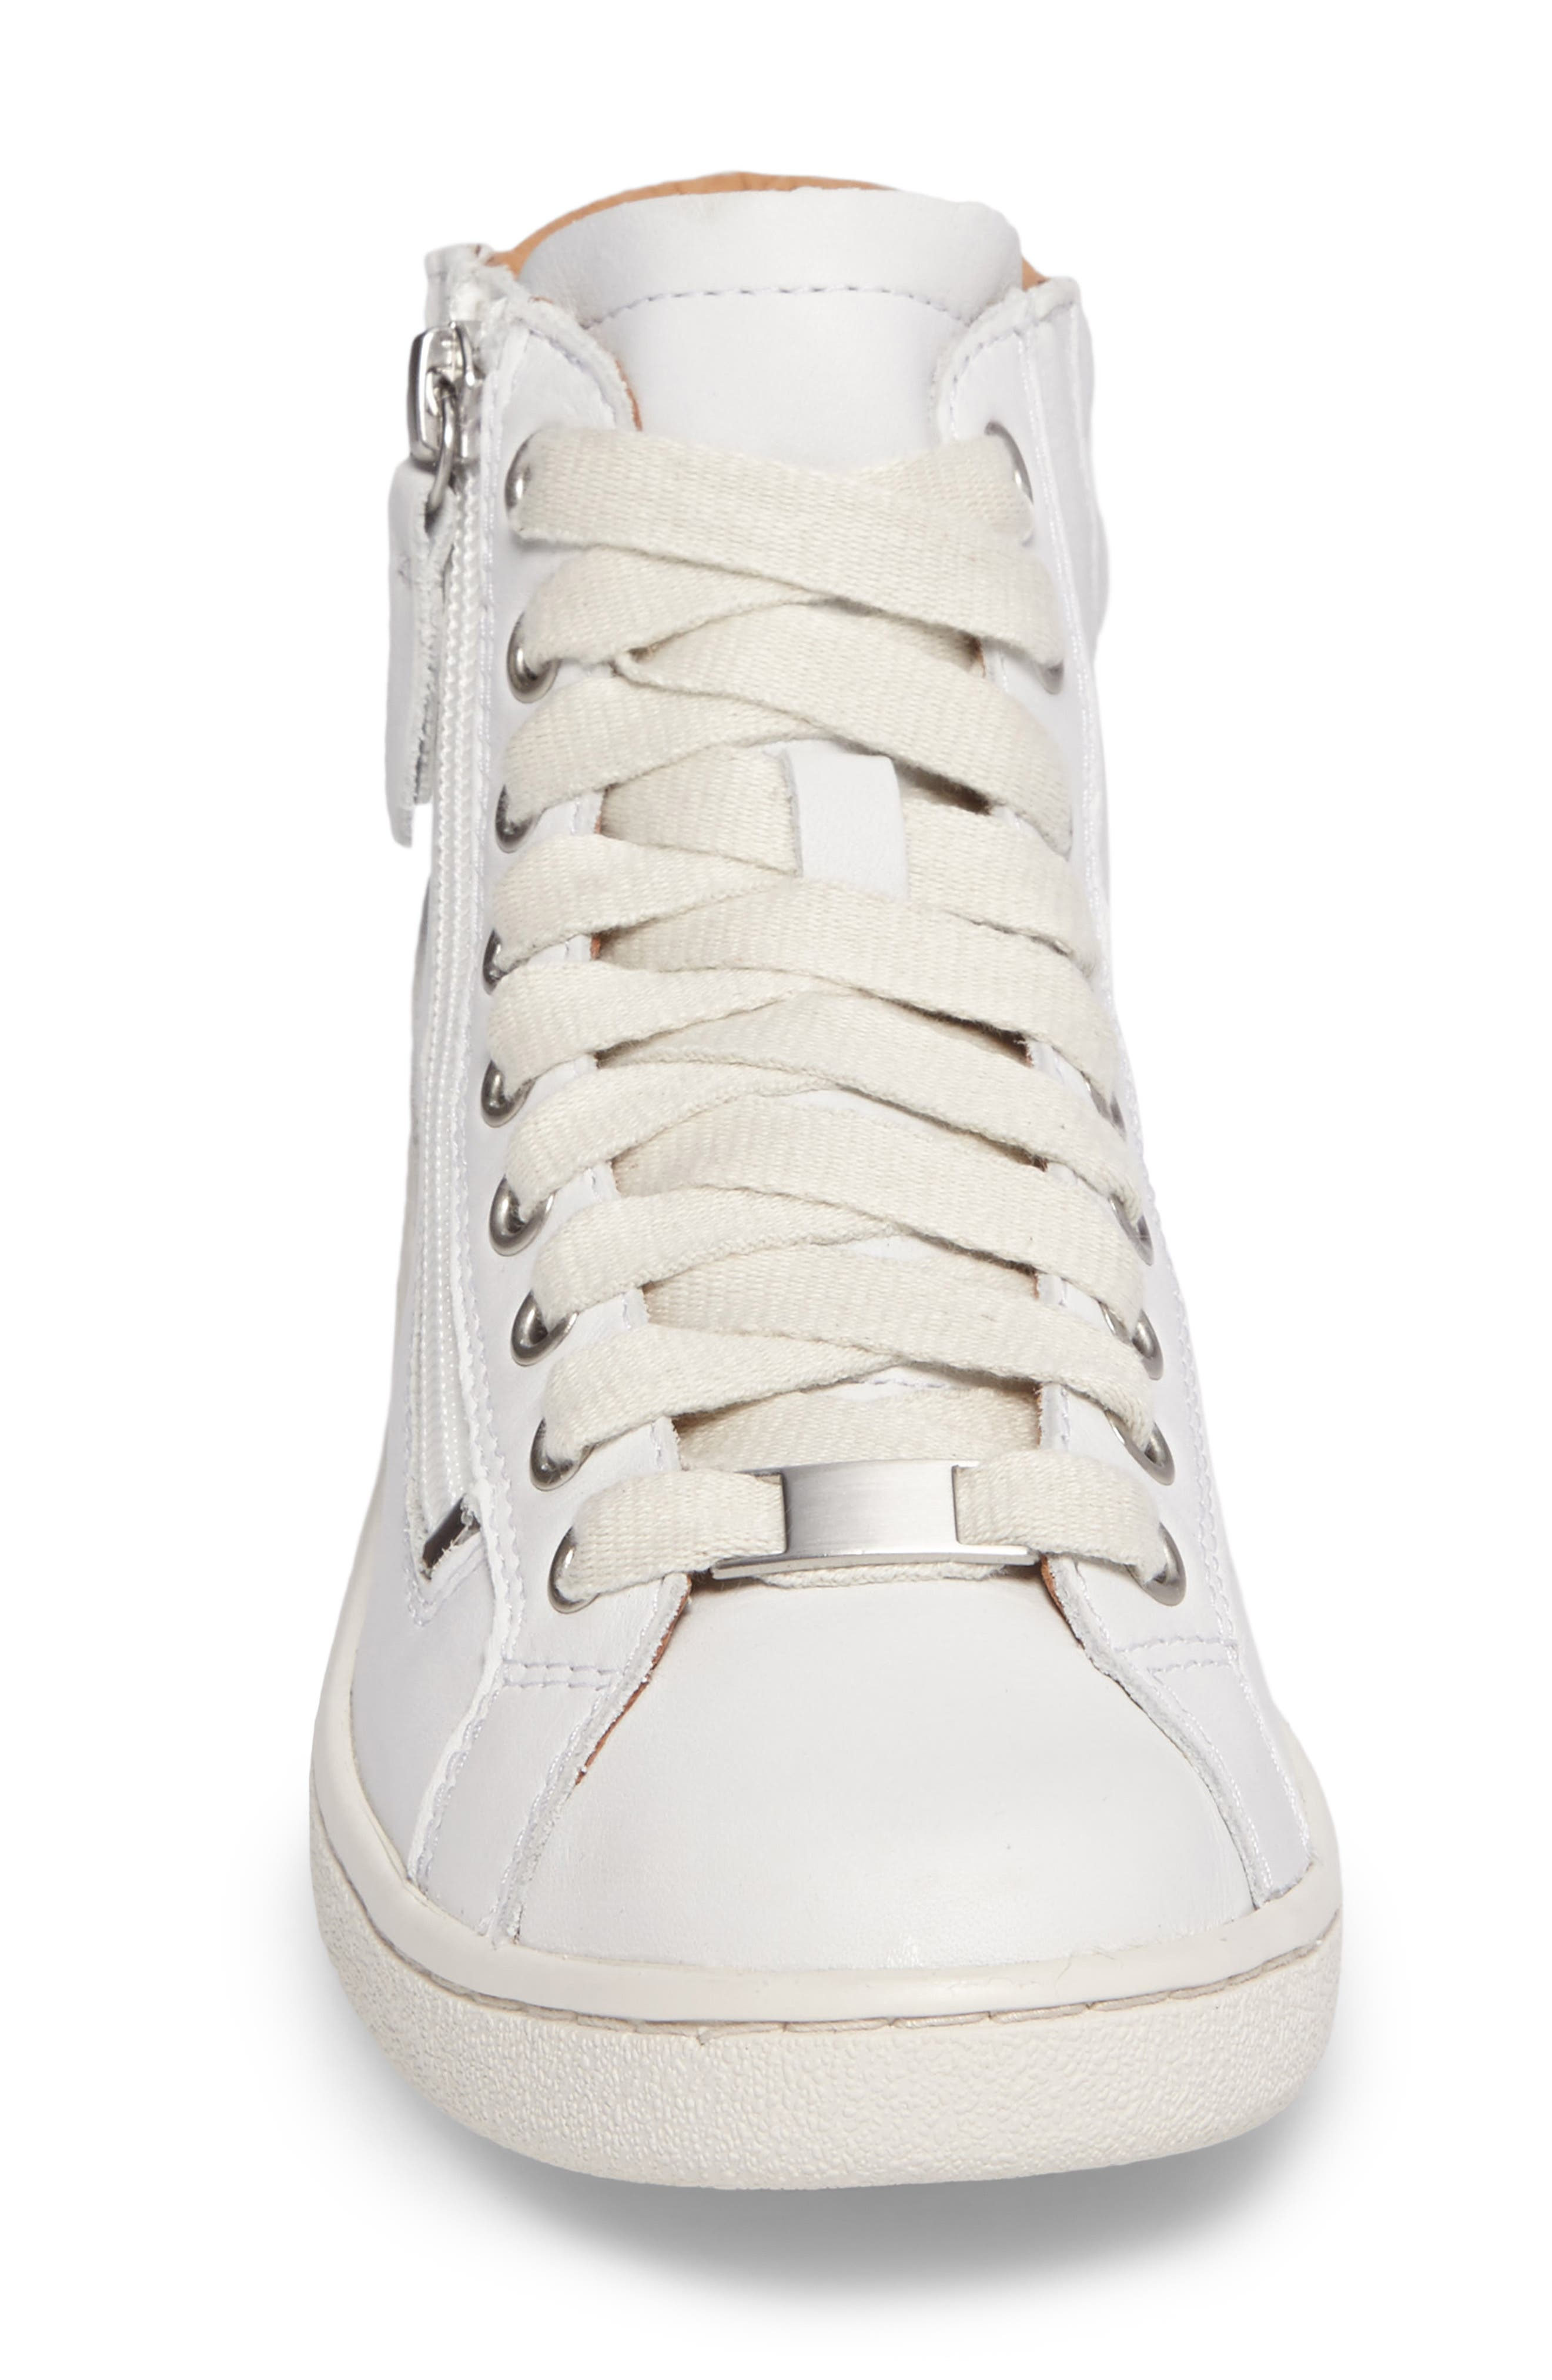 UGG Olive High Top Sneaker,                             Alternate thumbnail 4, color,                             White Leather